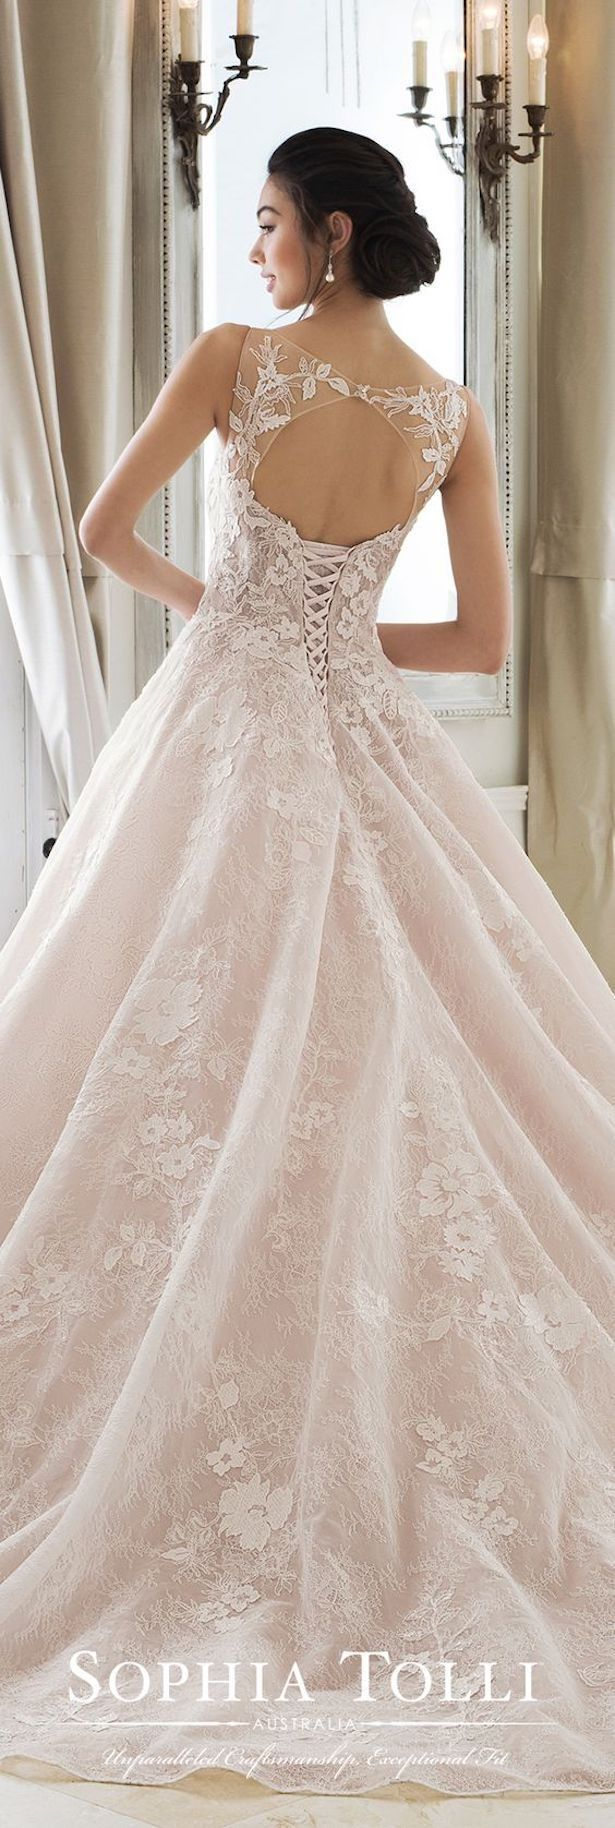 Gown dress for wedding party  Sophia Tolli Wedding Dress Collection Spring   intimate wedding